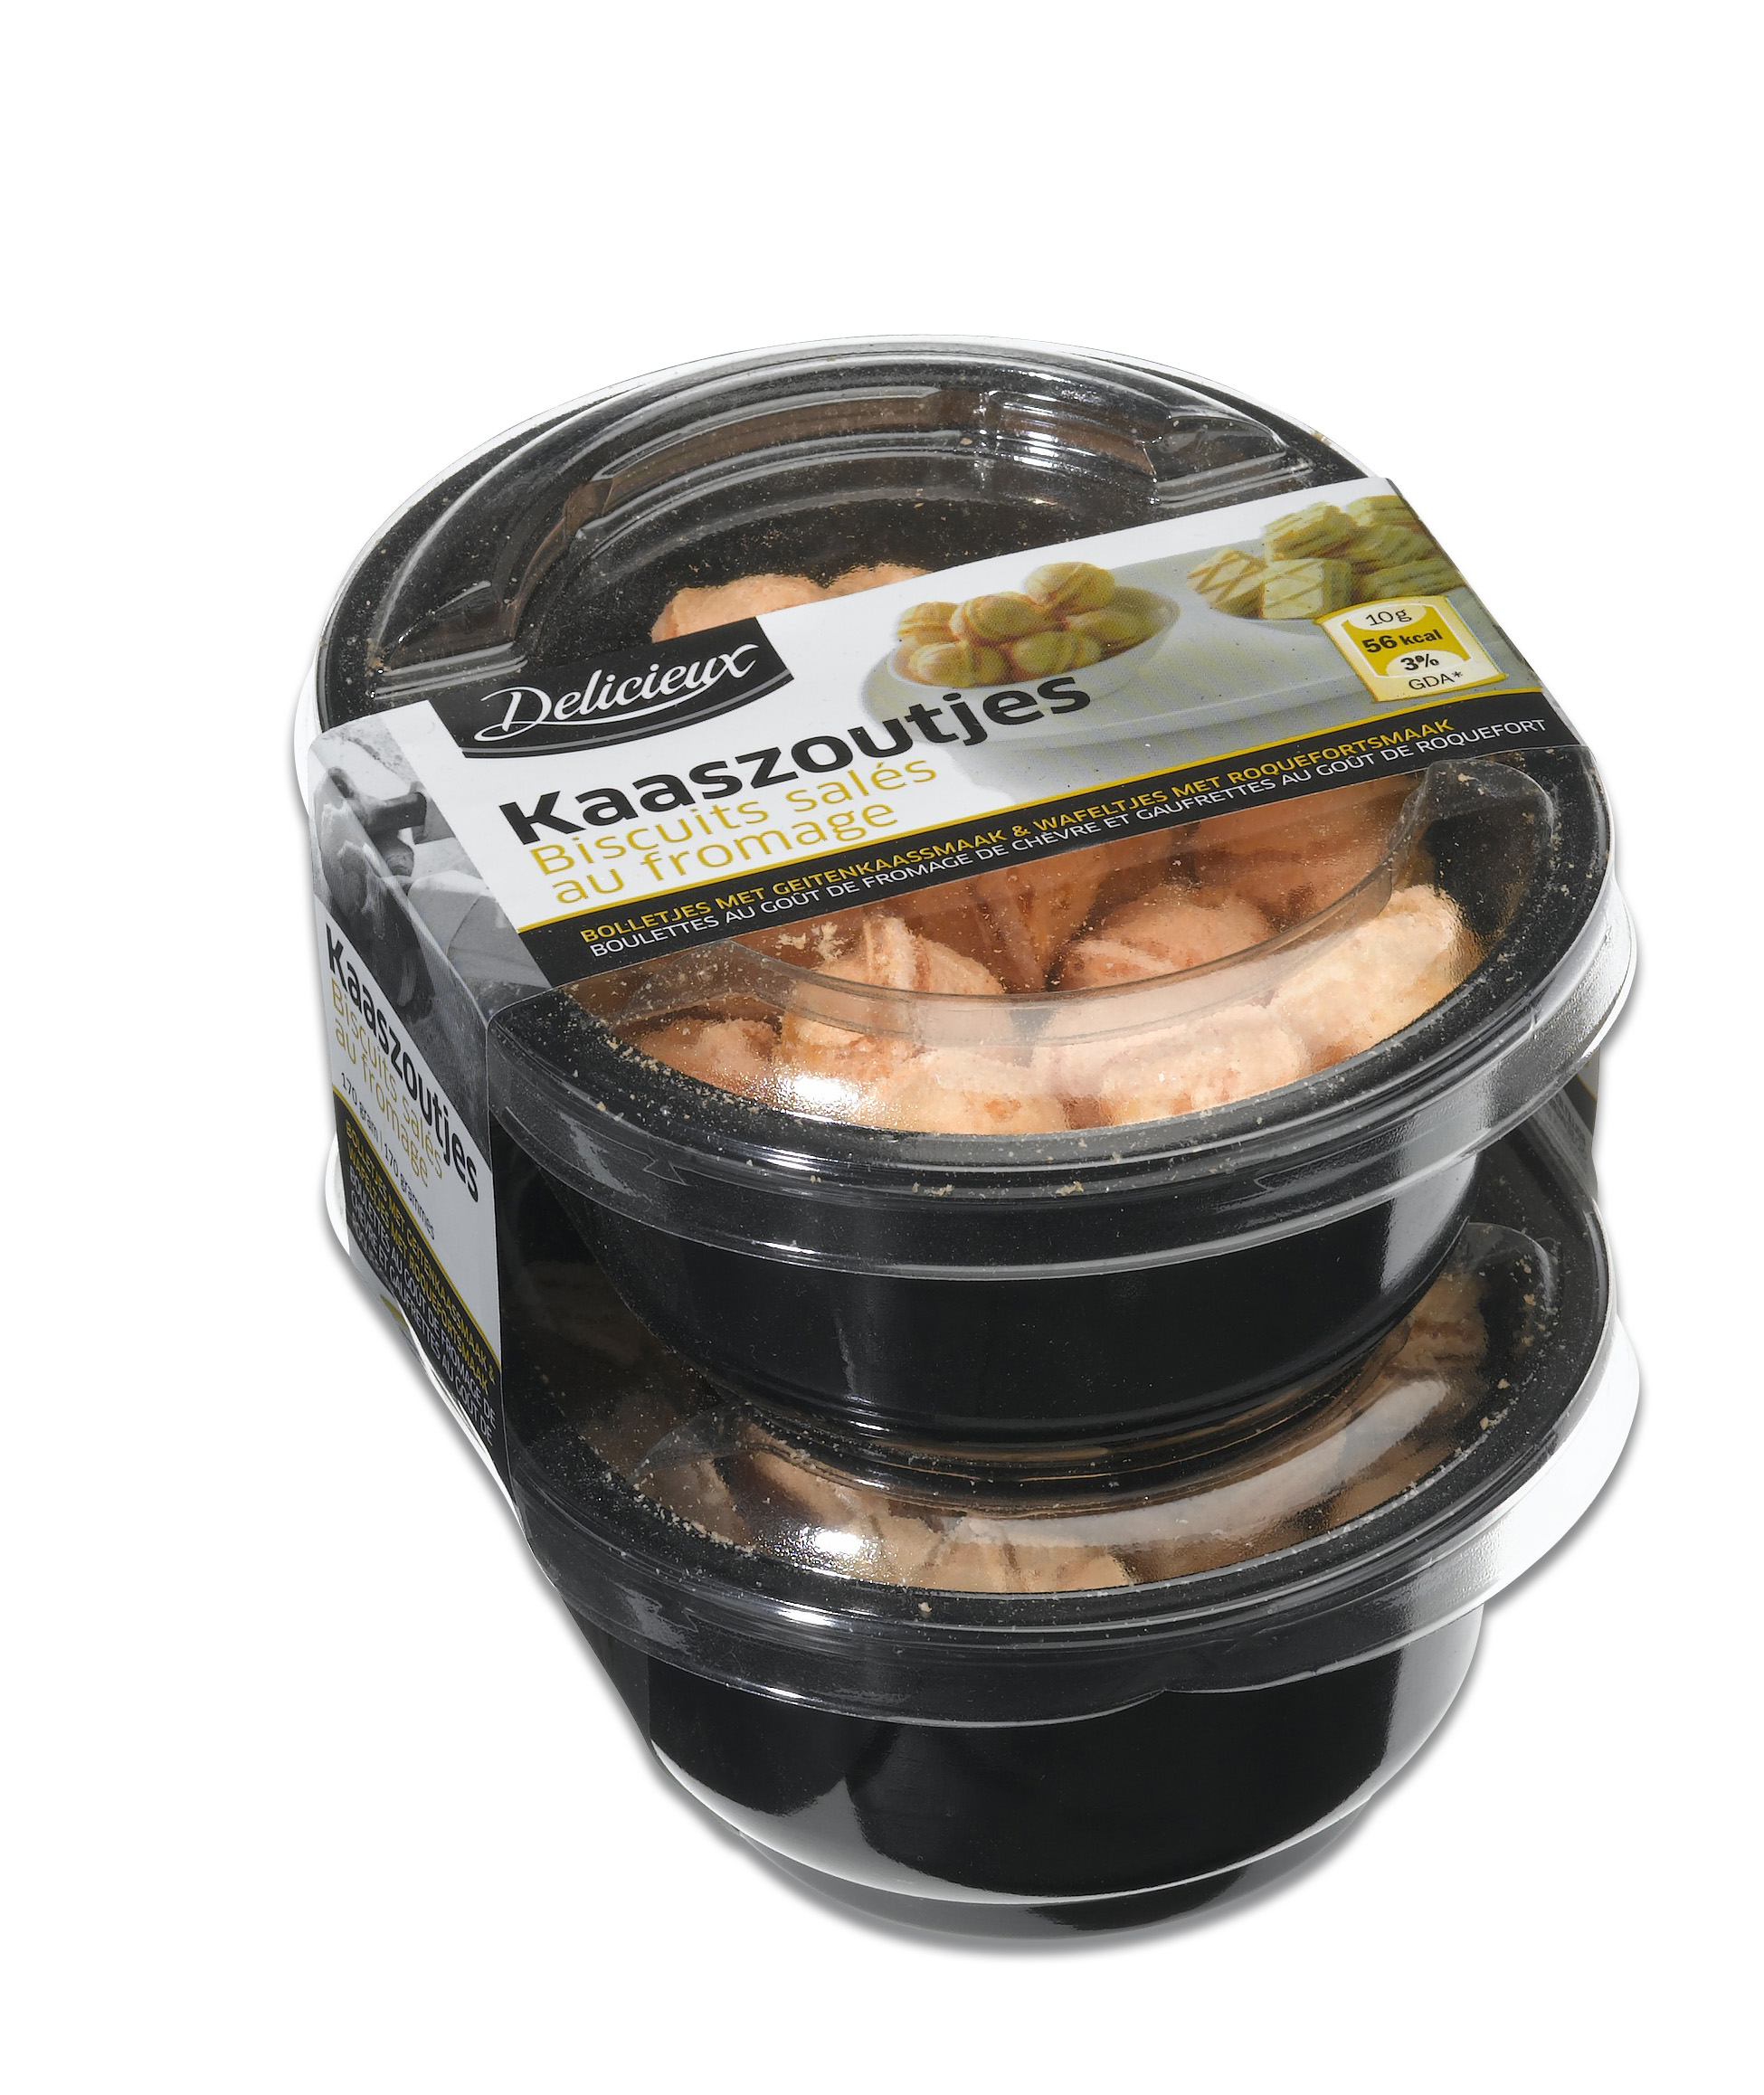 Package contour labeling helps to identify and promote your brand to current and prospective customers.